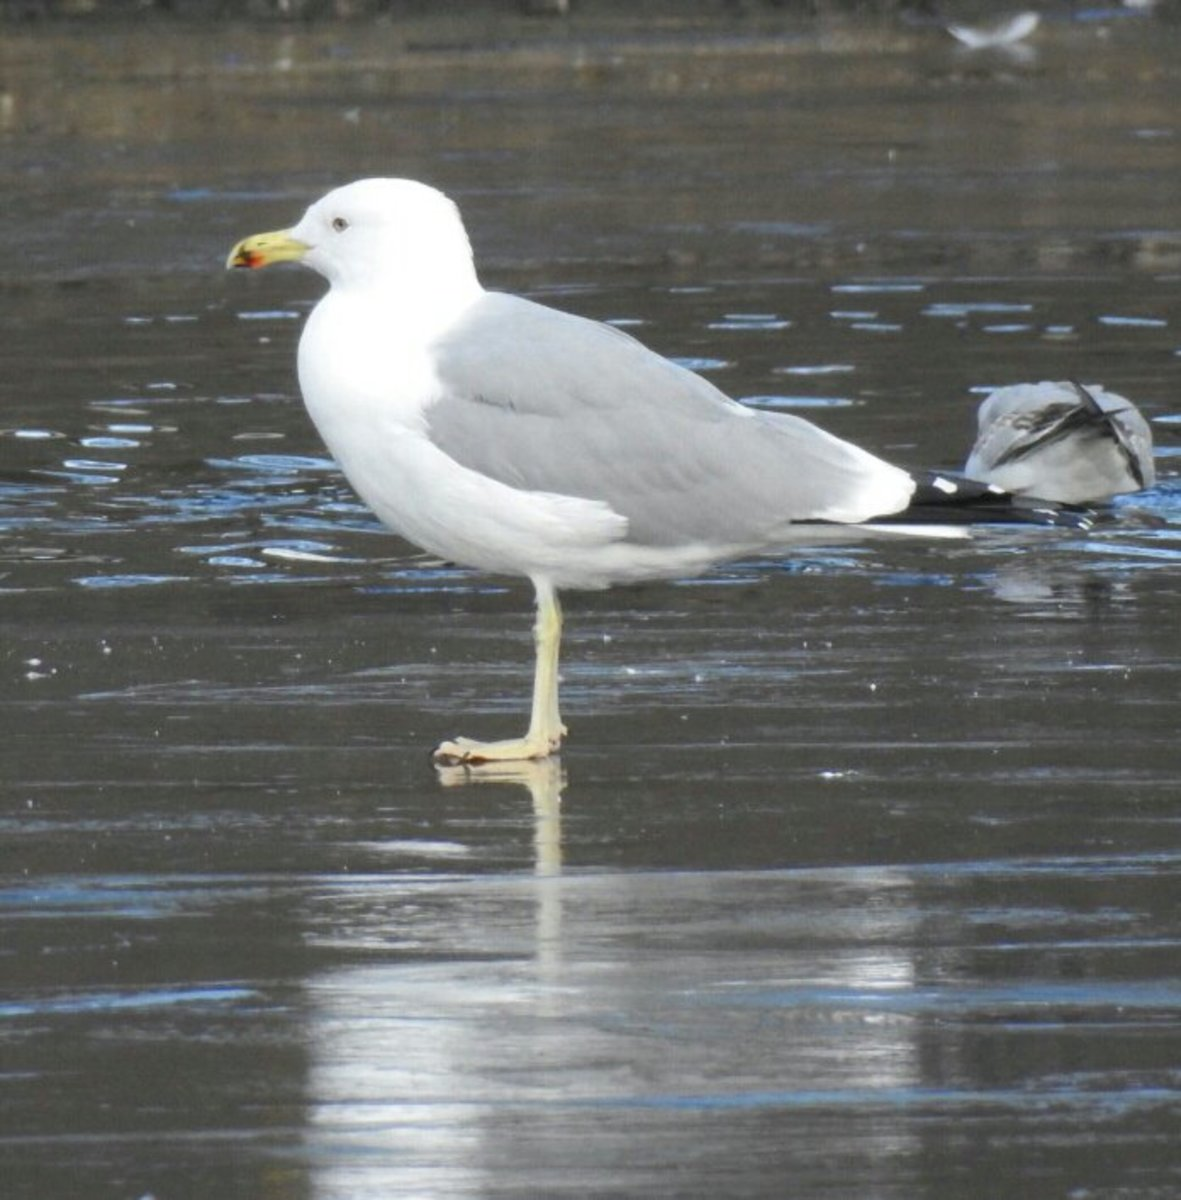 And here's the infamous Gull that has left even the foremost experts scratching their heads.